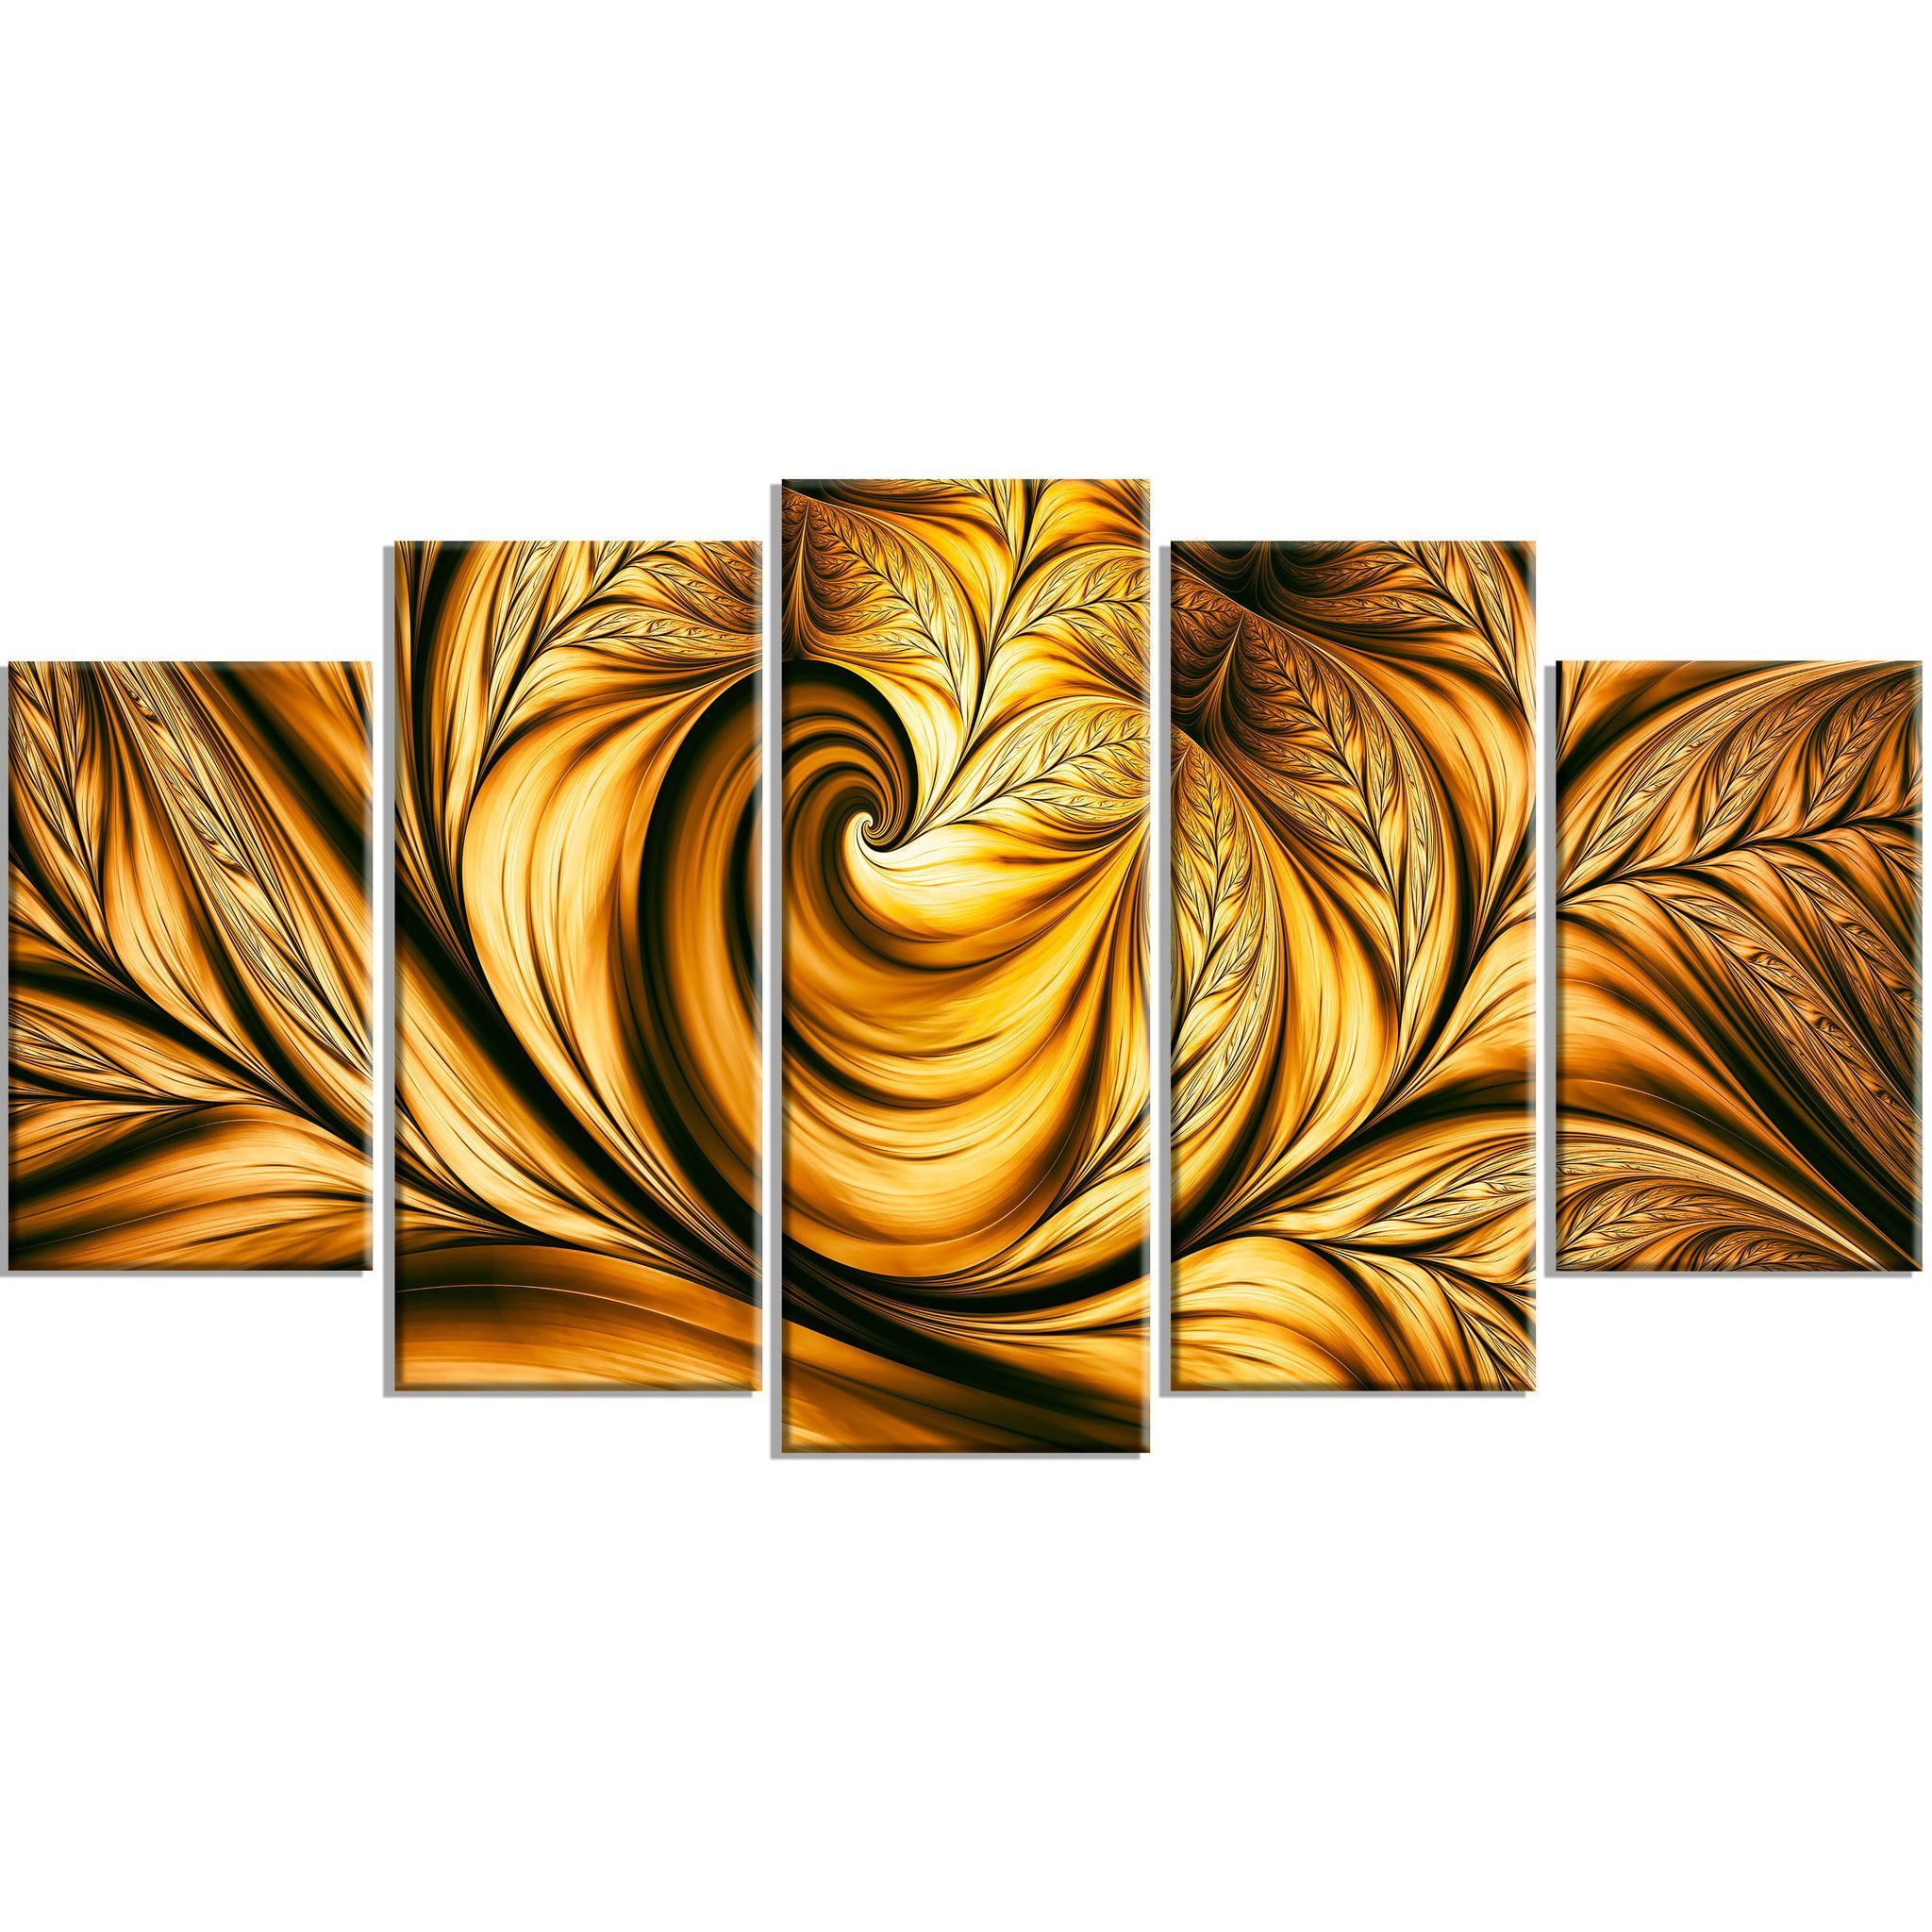 Golden Fantasy Canvas Abstract Wall Art Print | Abstract wall art ...